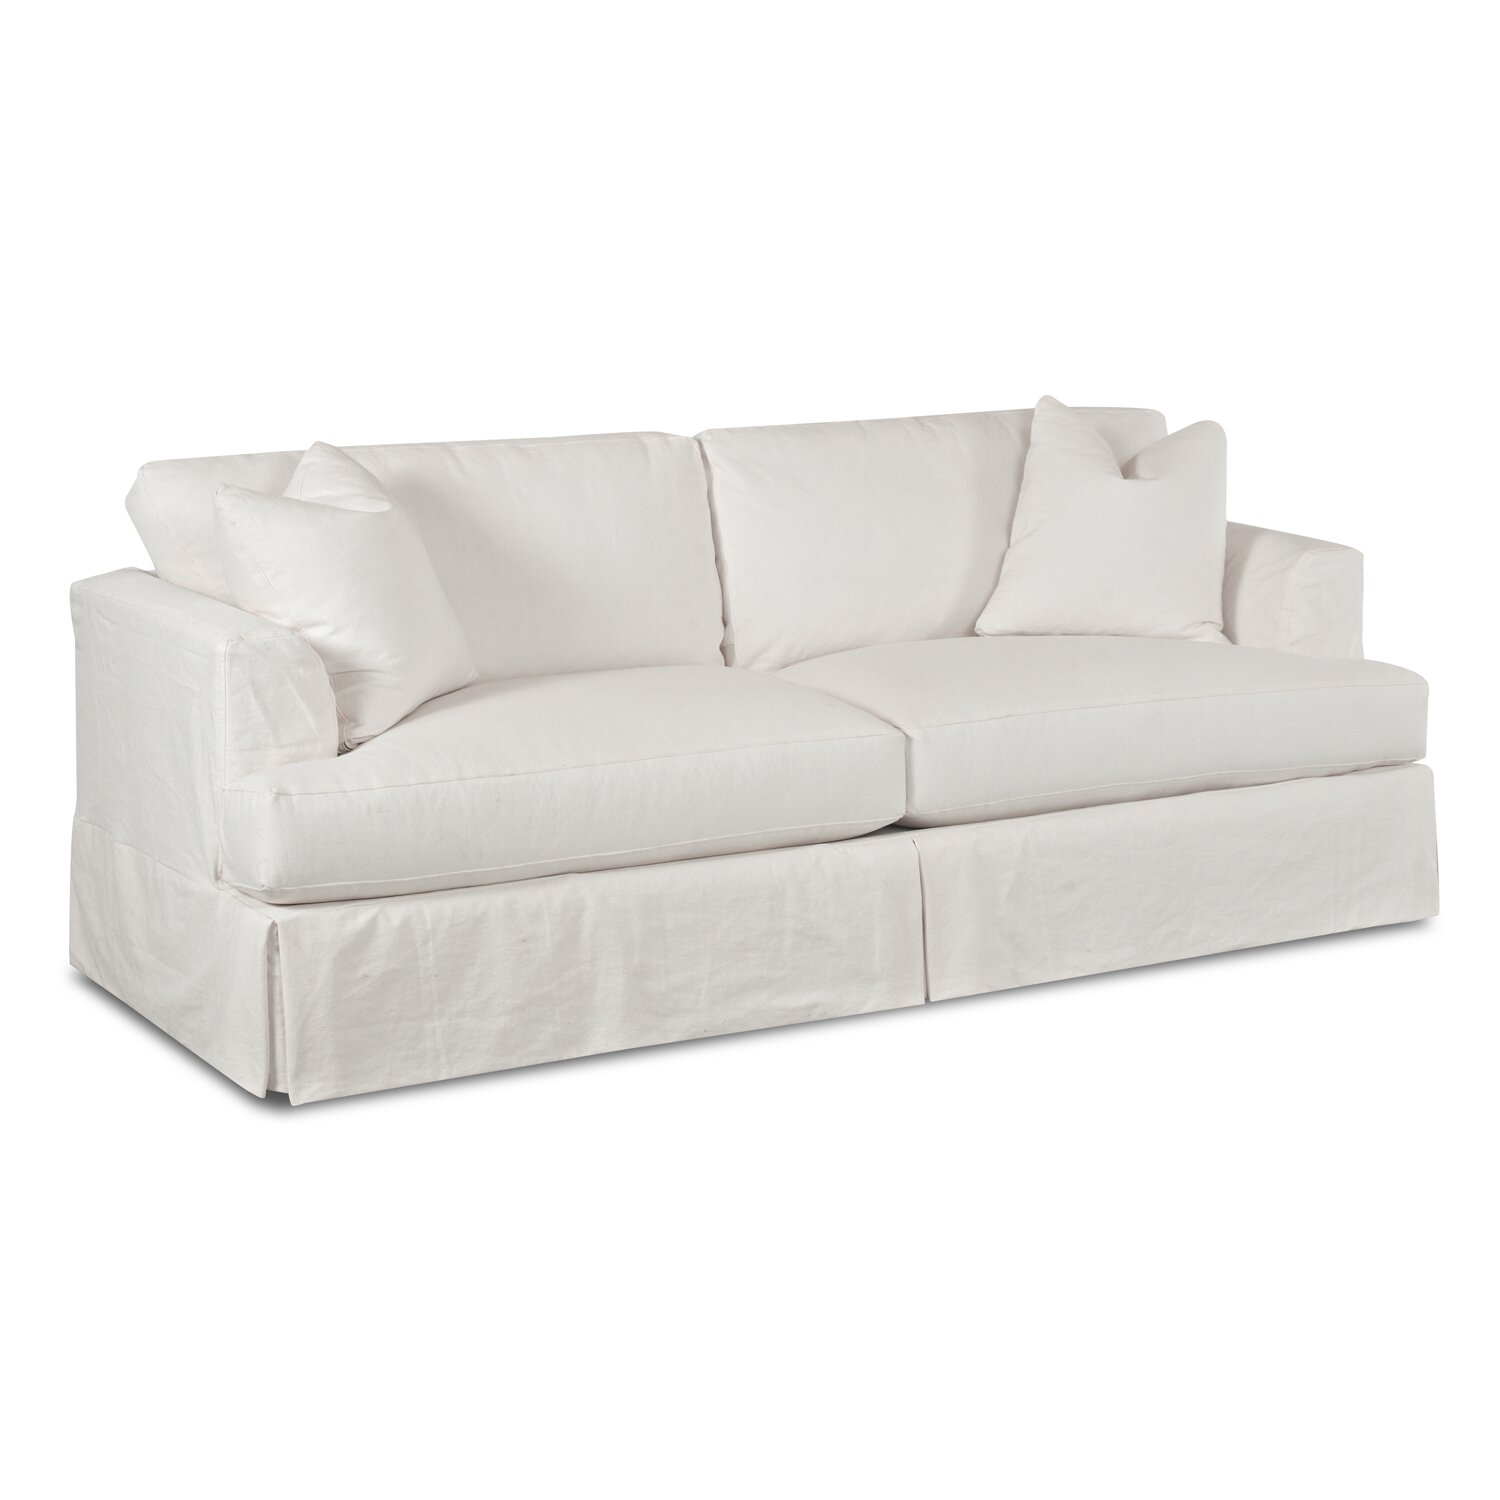 wayfair custom upholstery carly sleeper sofa reviews With wayfair sleeper sofa sectional